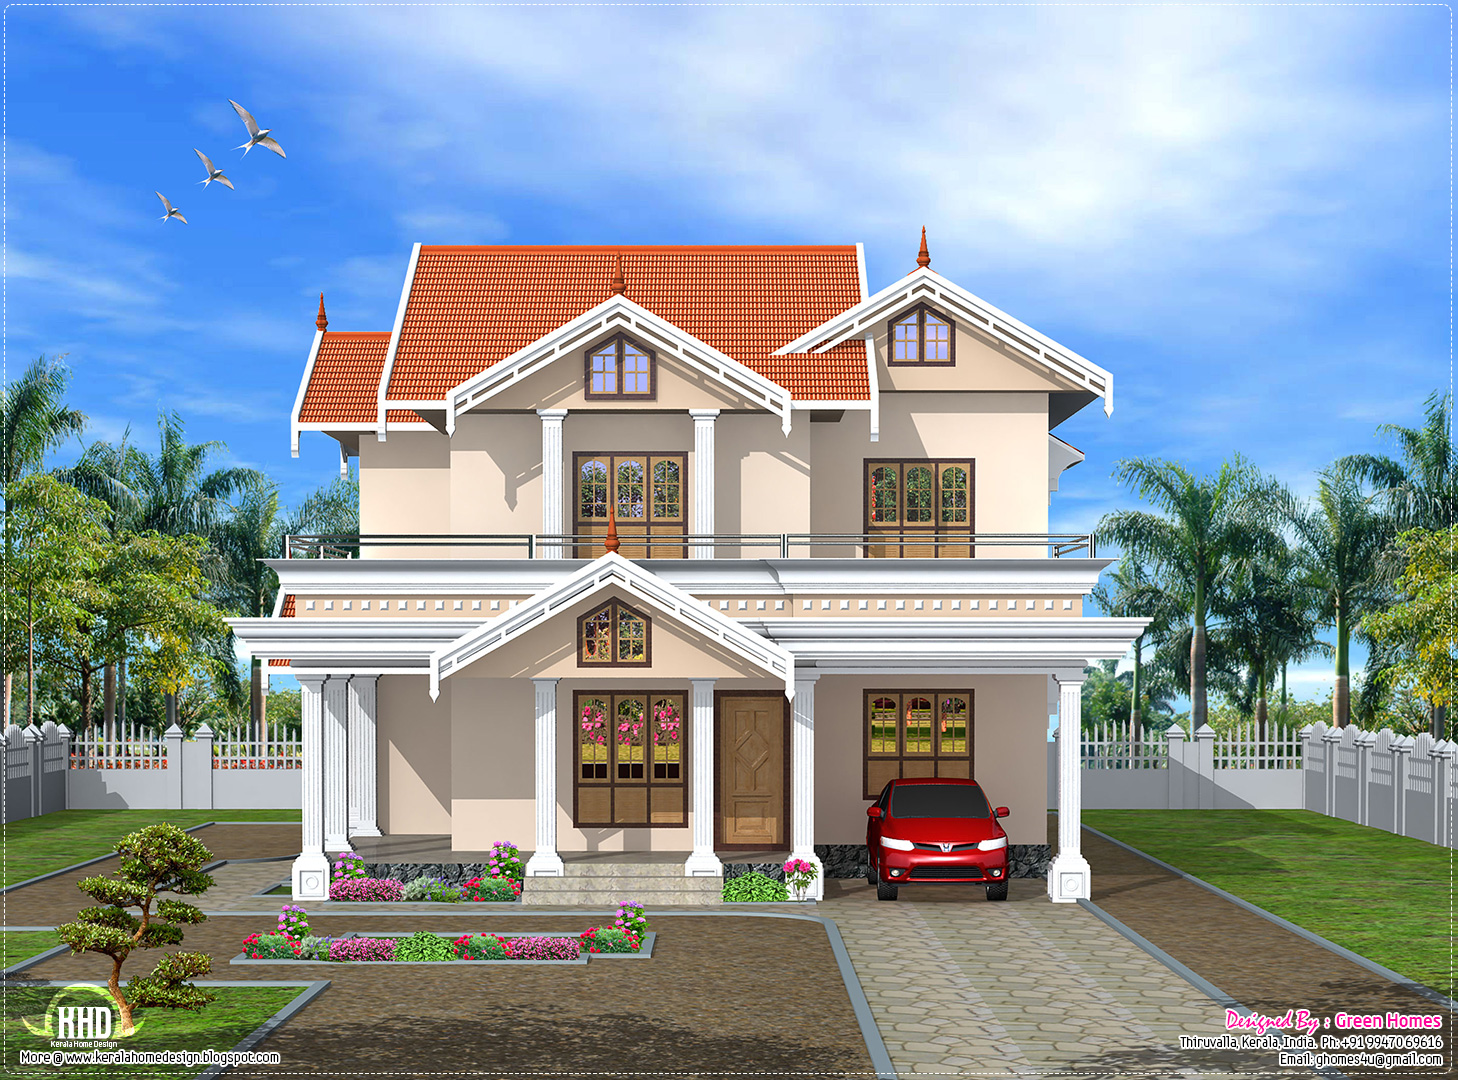 ... yards 4 bedroom cute home design by green homes thiruvalla kerala